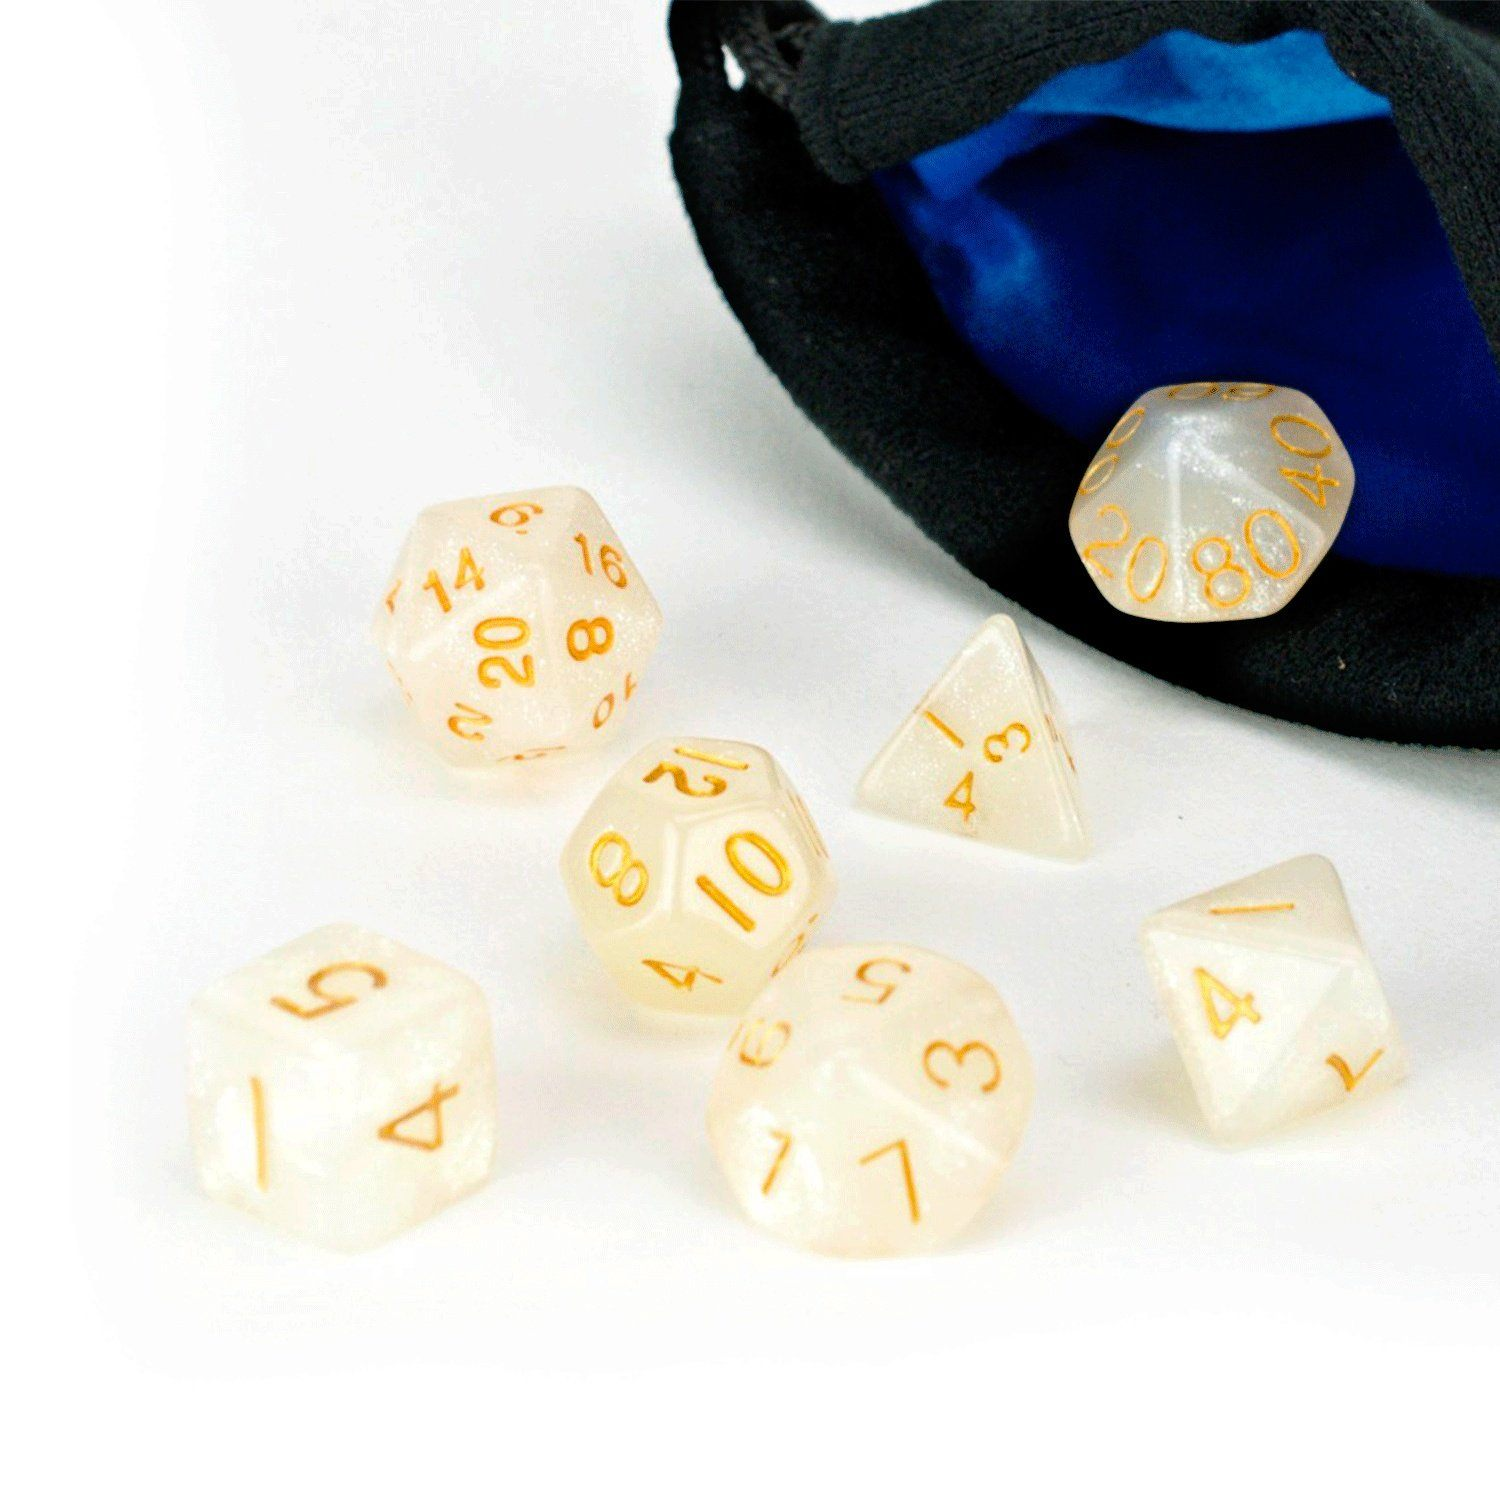 Ivory Dice Set - 7 Piece Set With Bag